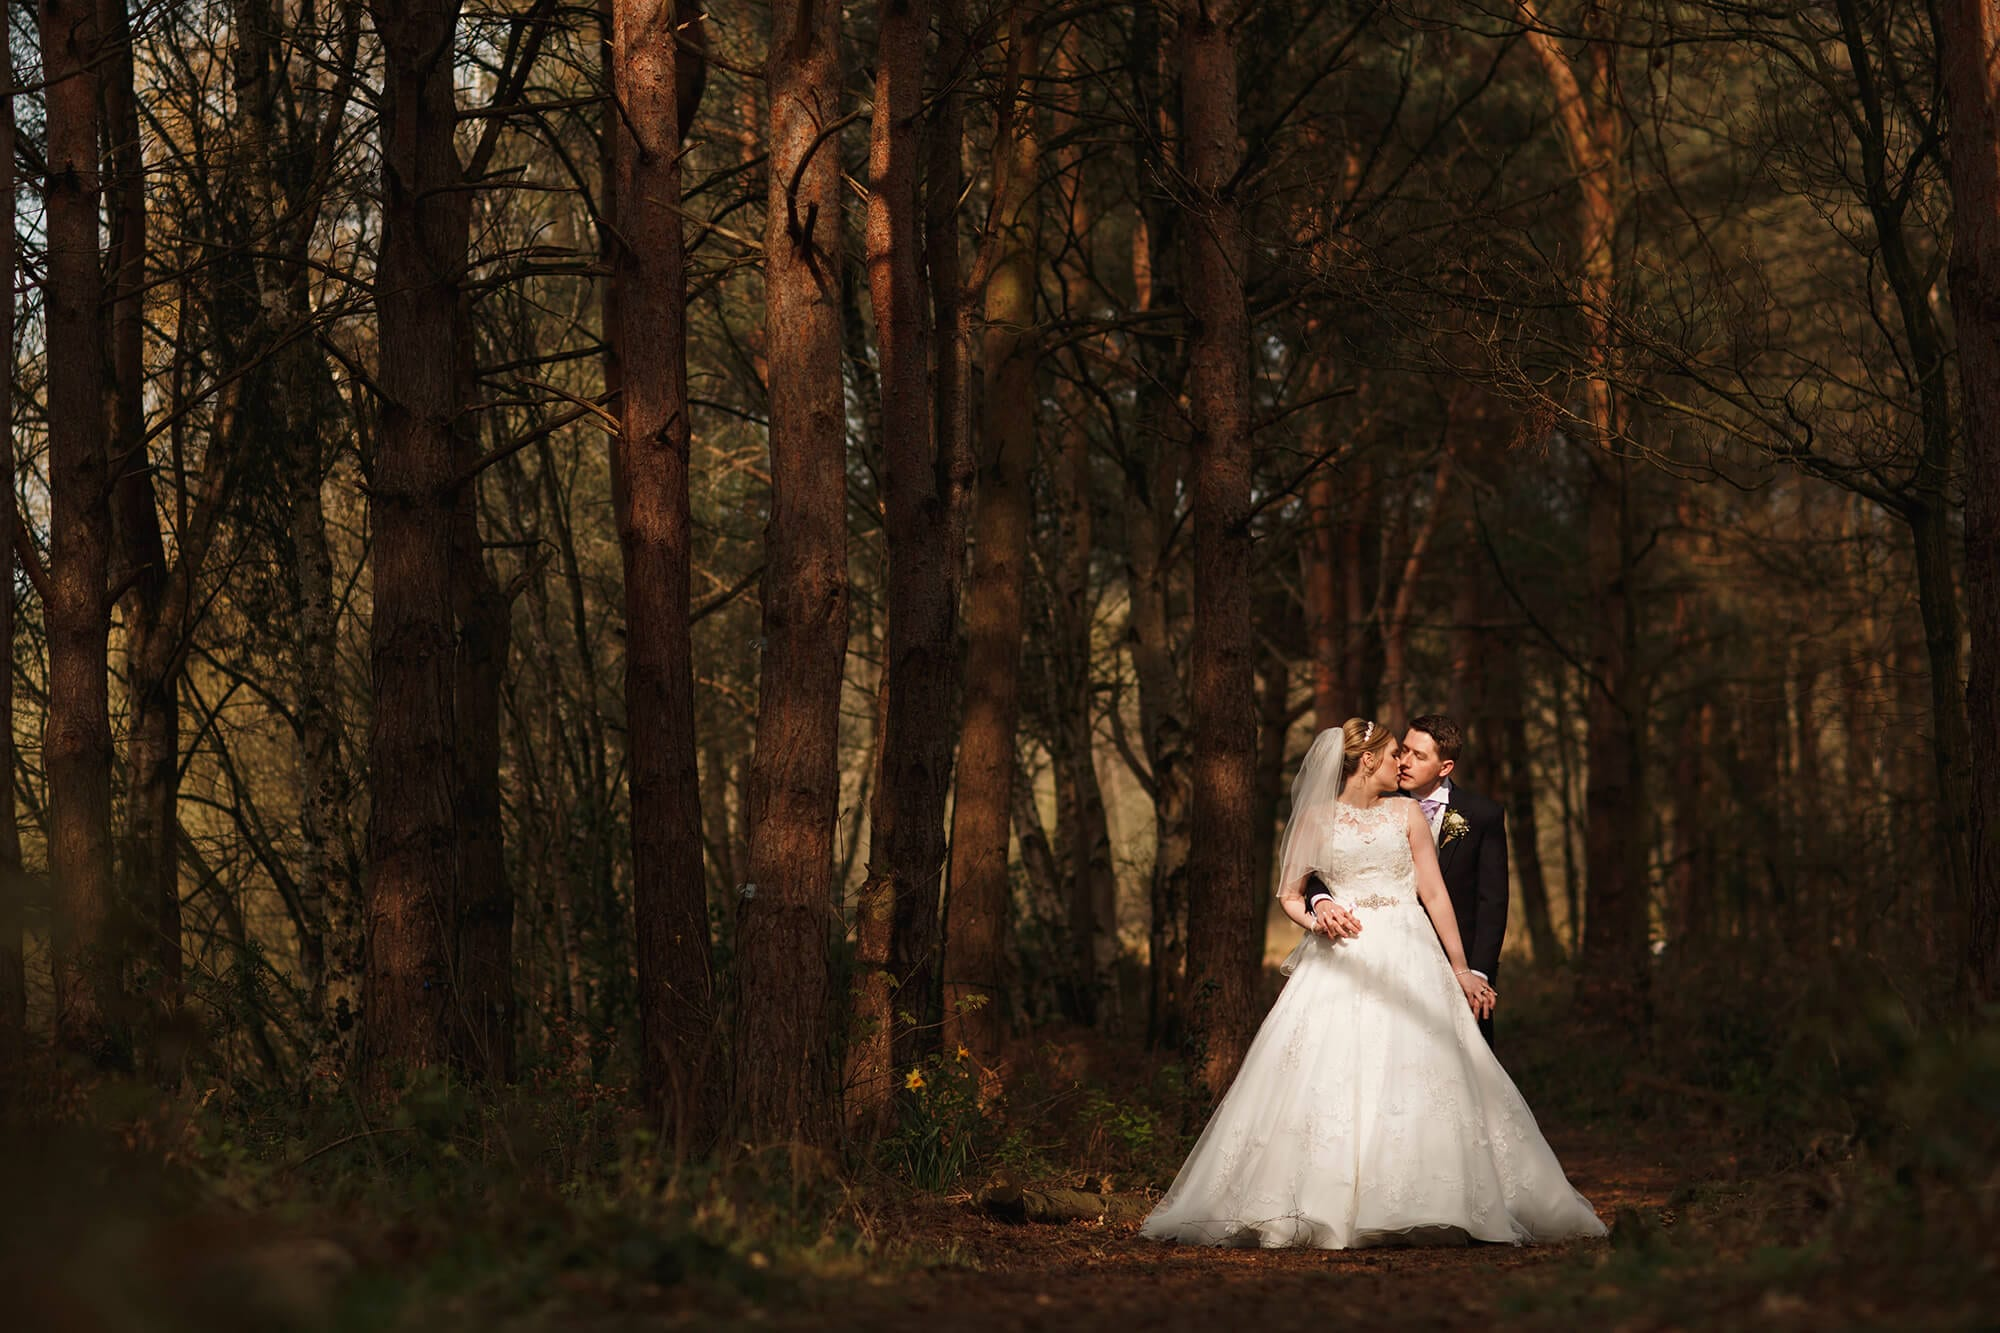 Bride And Groom Woodland Nunsmere Hall